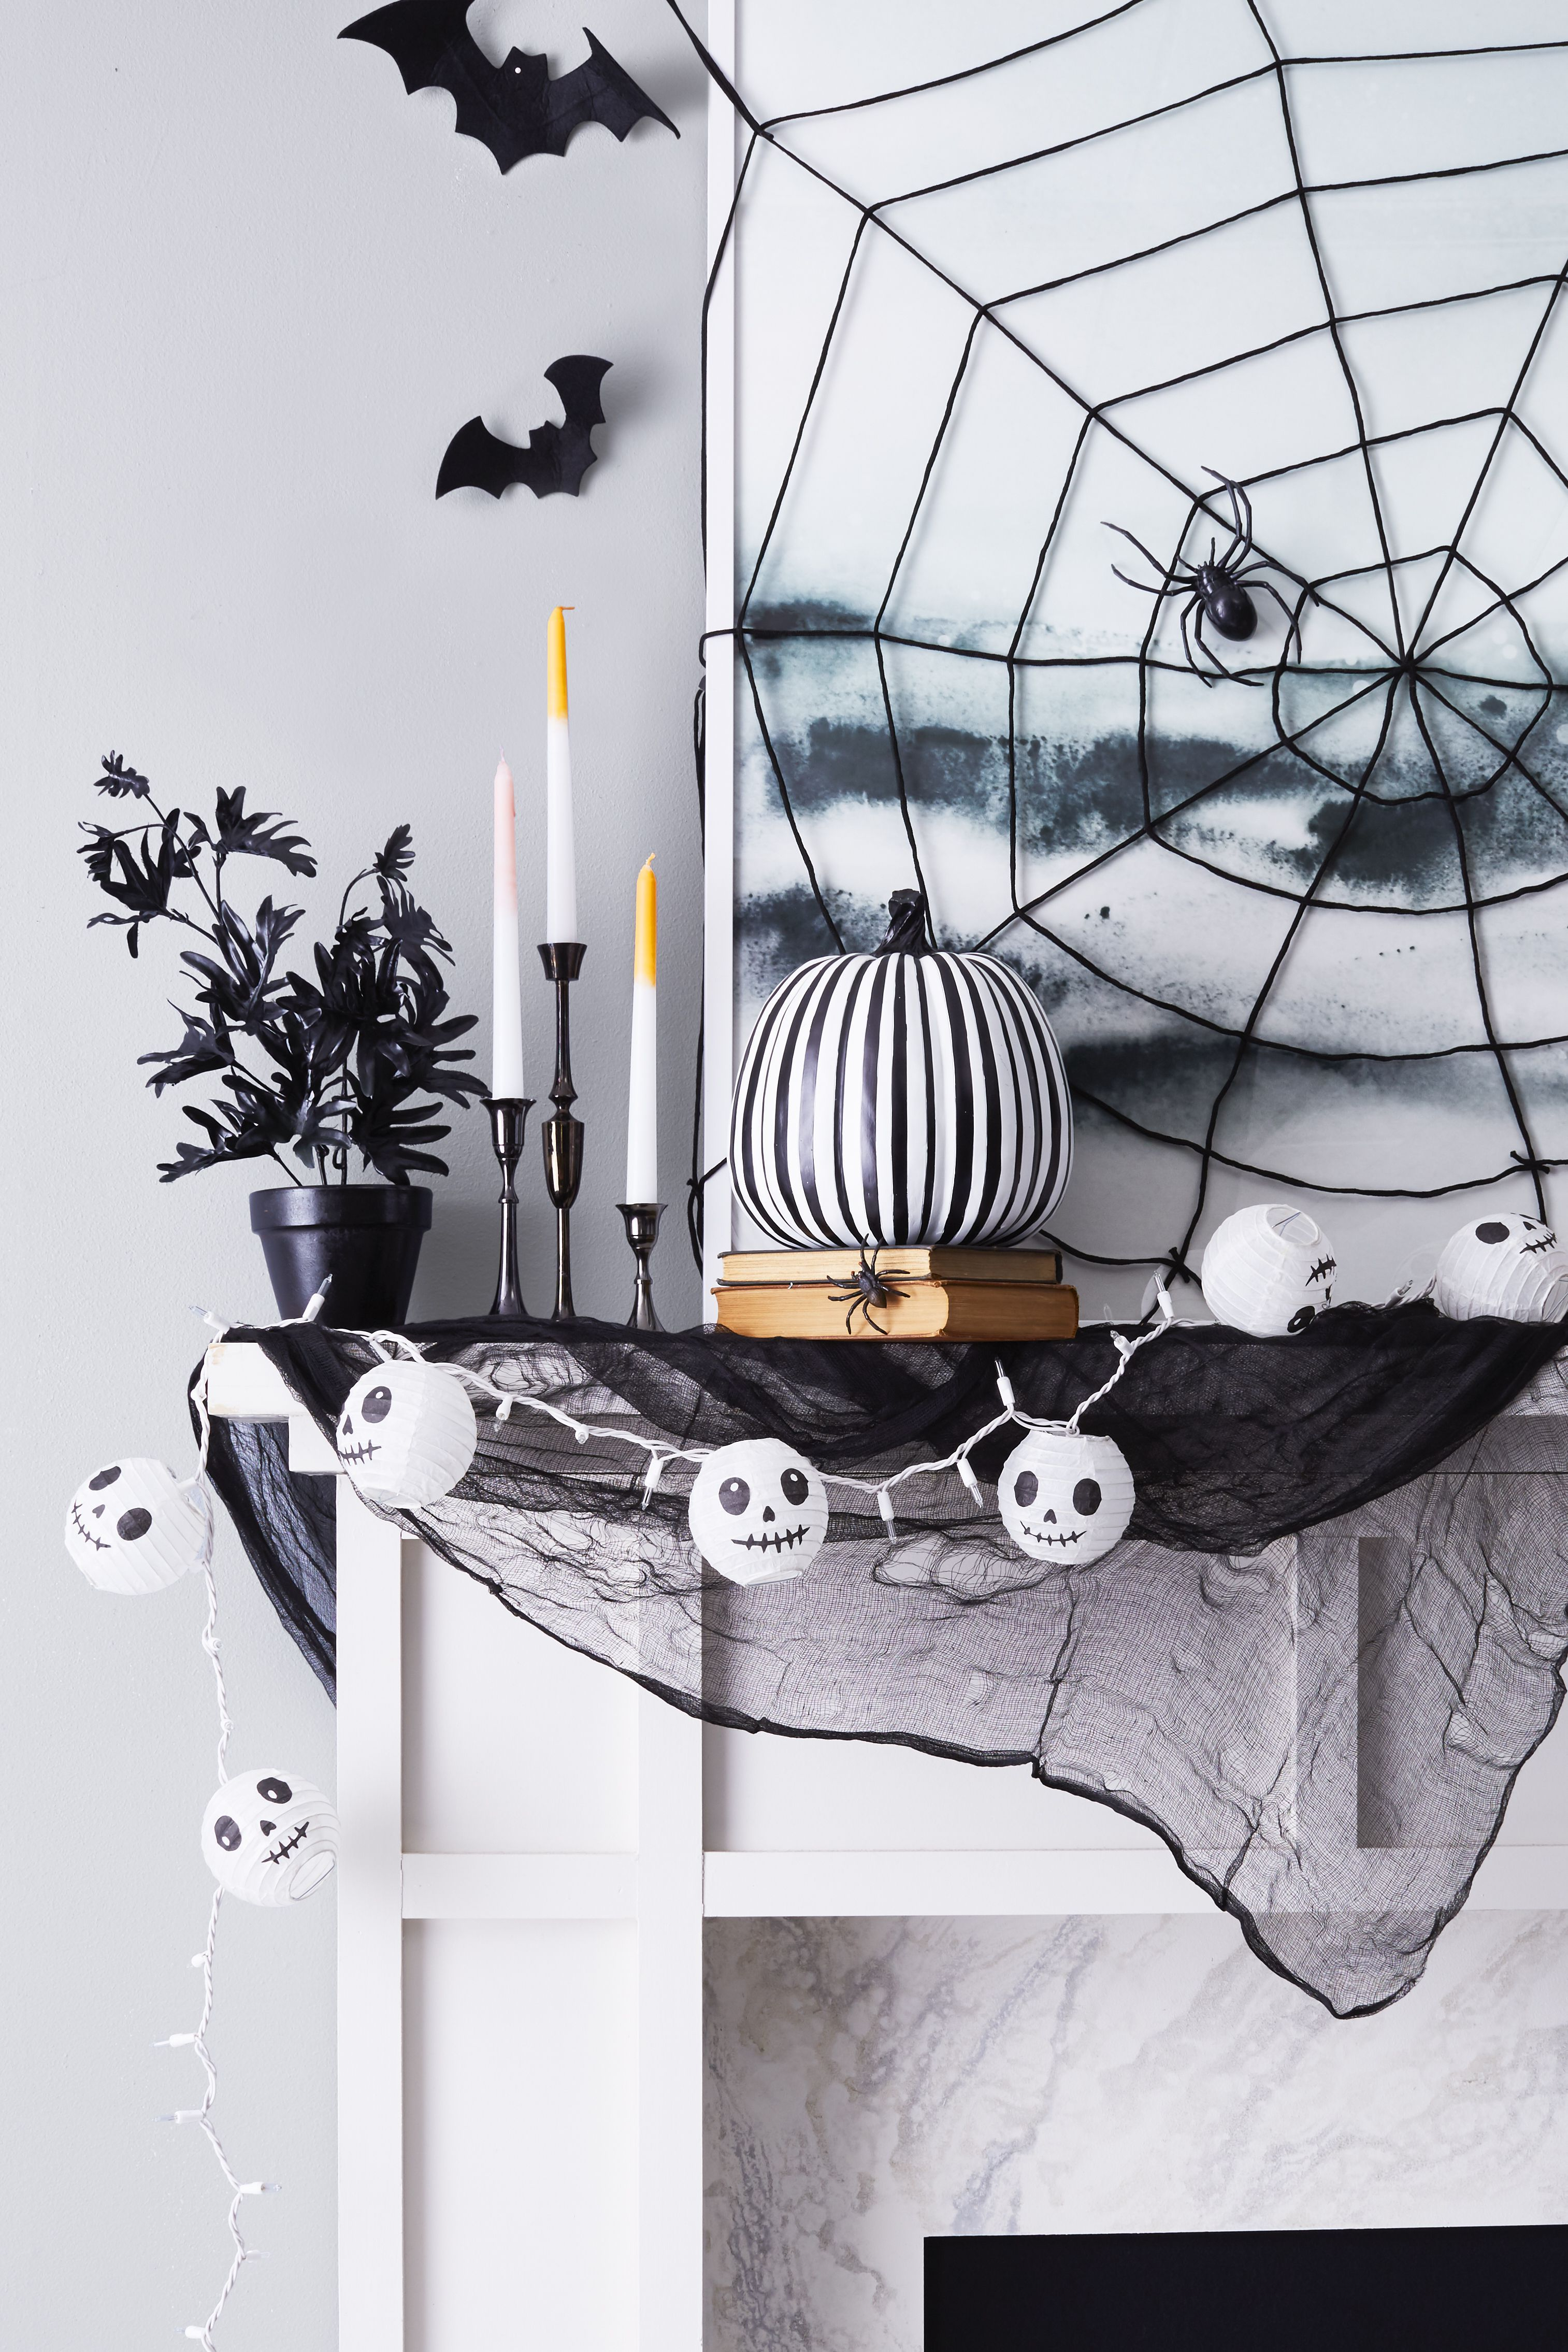 halloween decorations : cool halloween decorations ideas - www.pureclipart.com